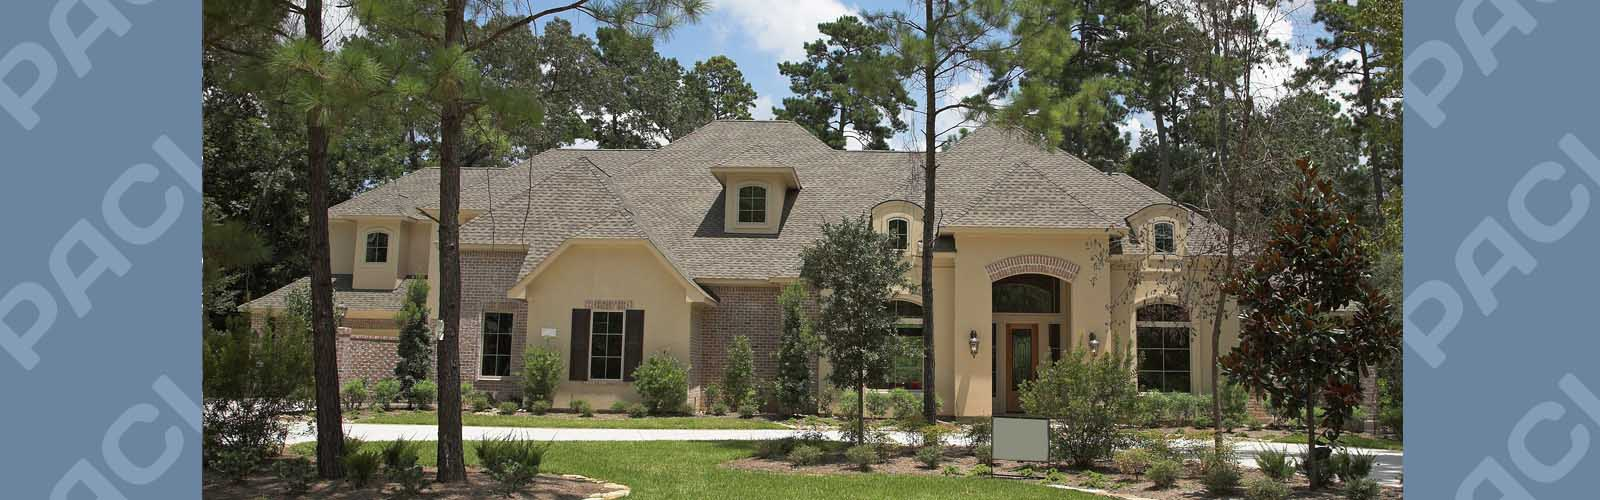 Residential Electrical Contractor in Jacksonville